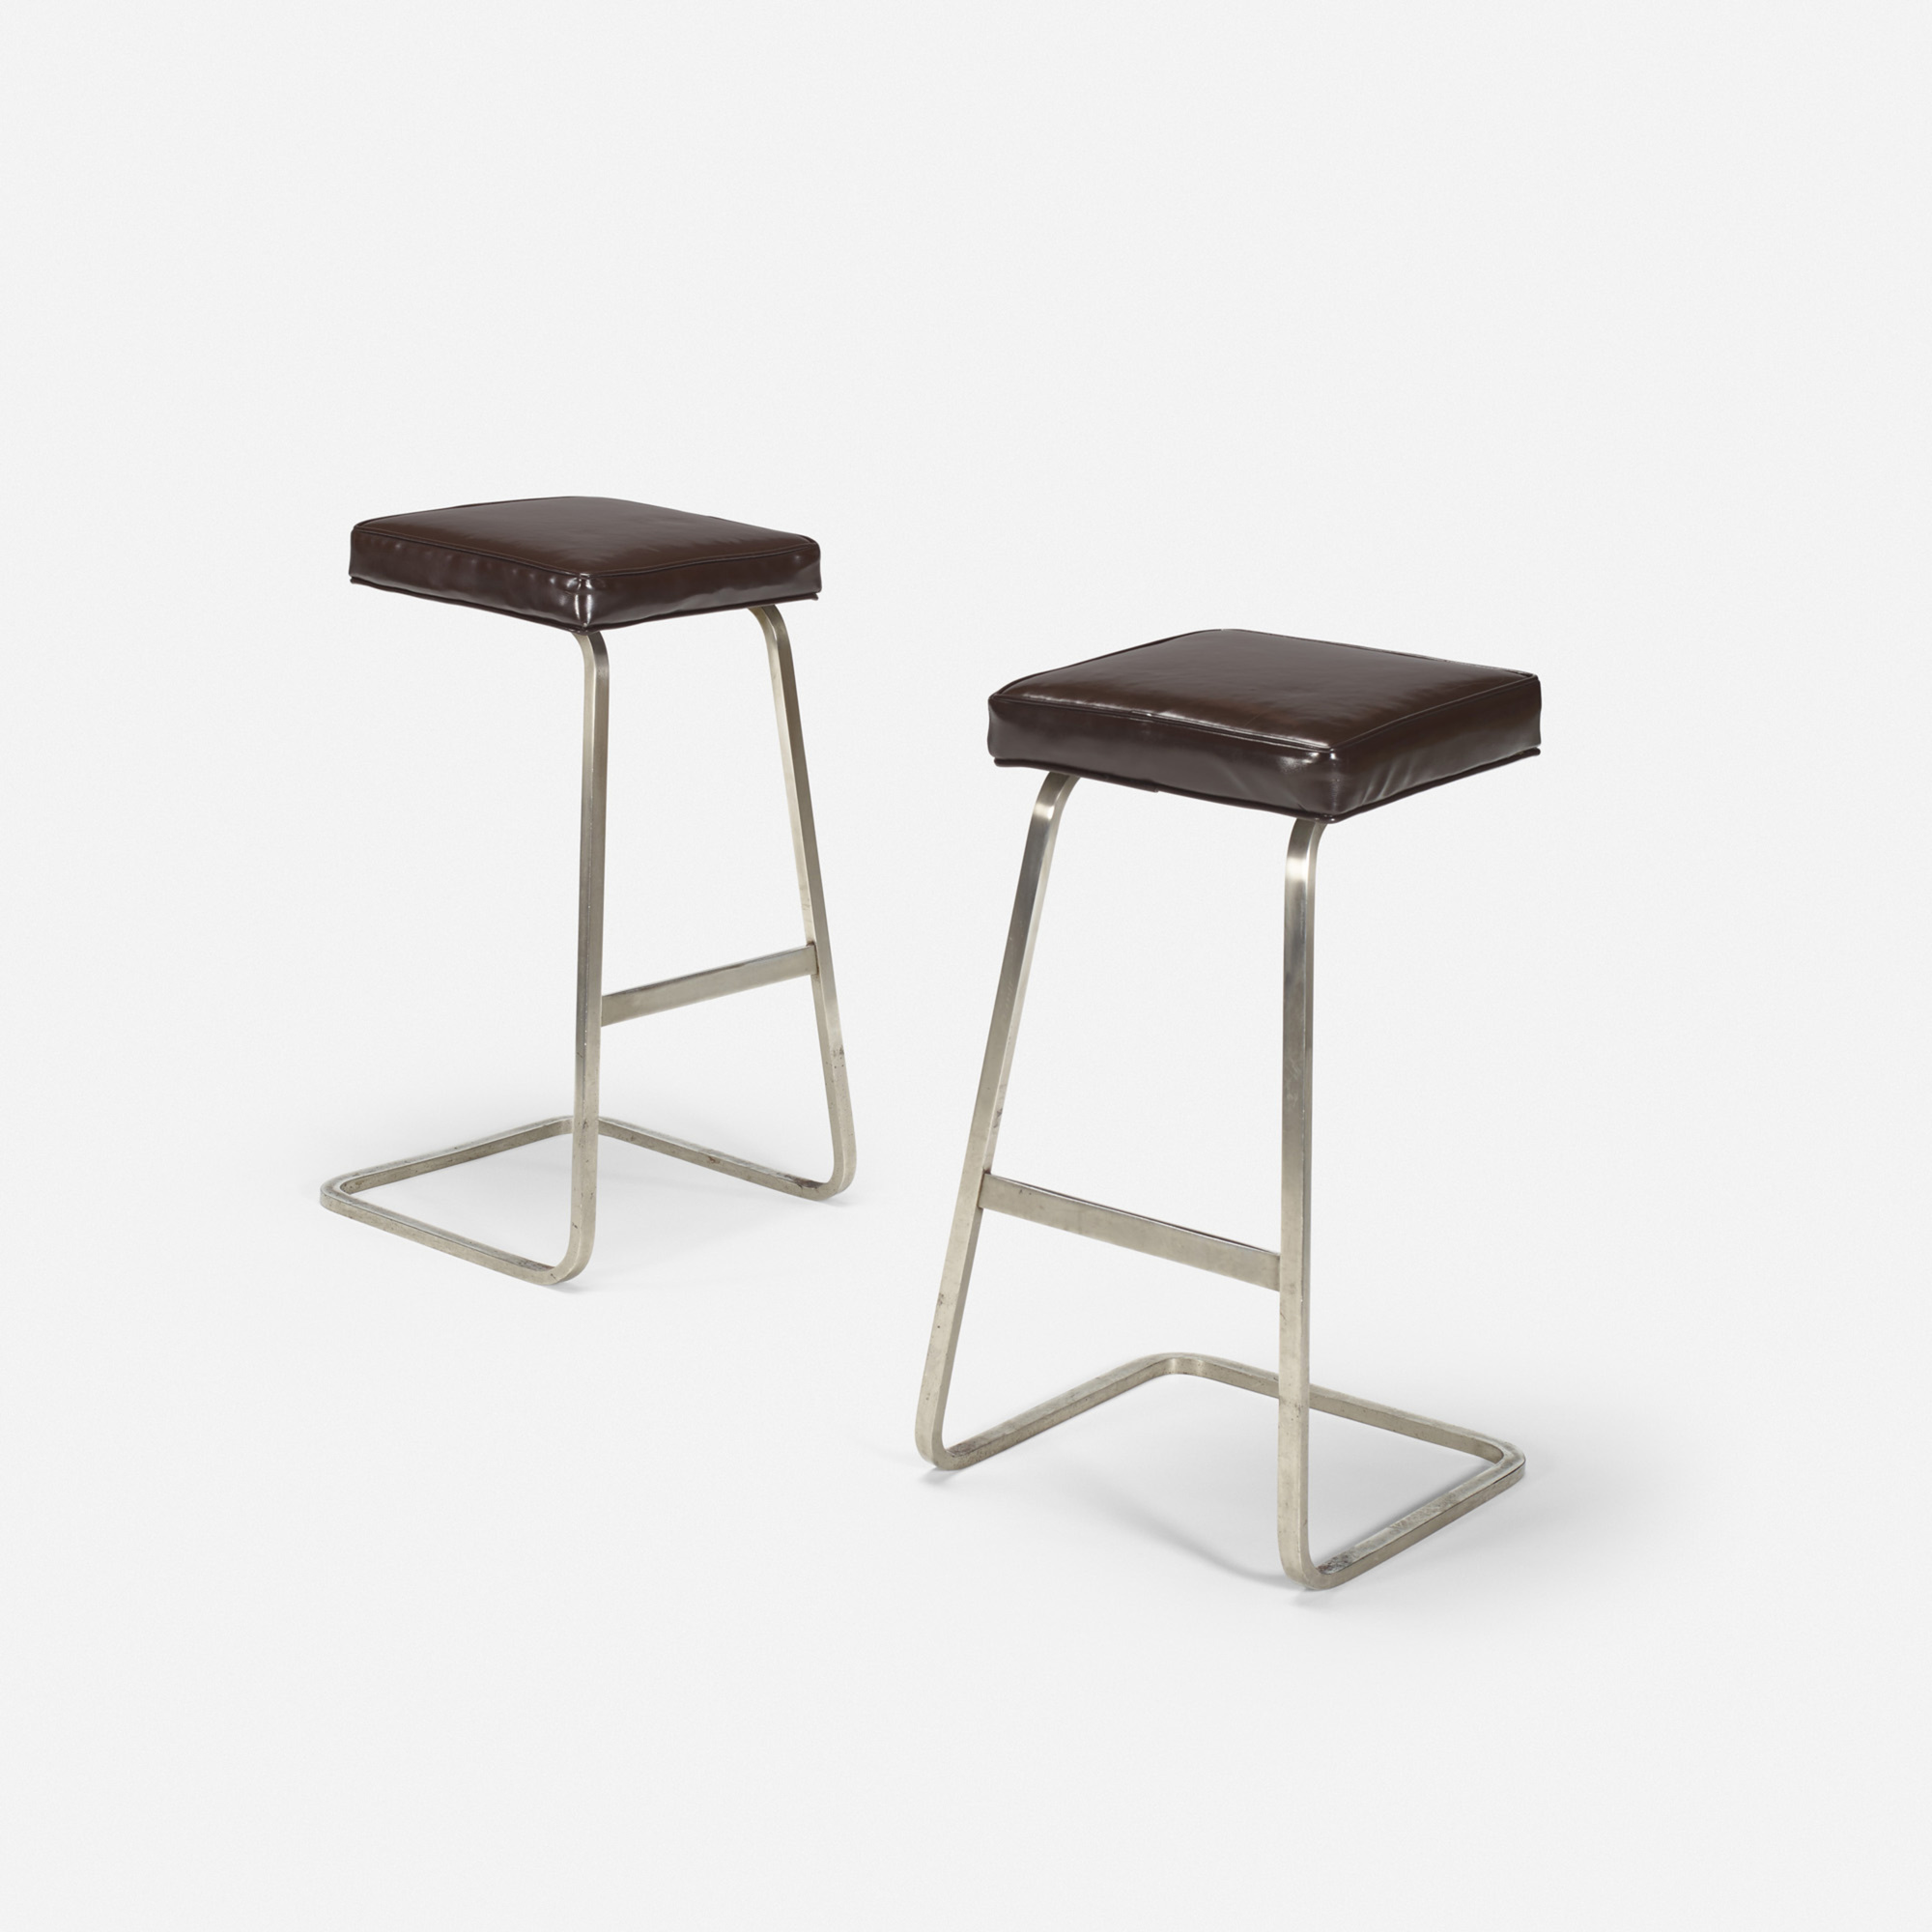 118: Ludwig Mies van der Rohe with Philip Johnson / Four Seasons bar stools from the Grill Room, pair (1 of 1)